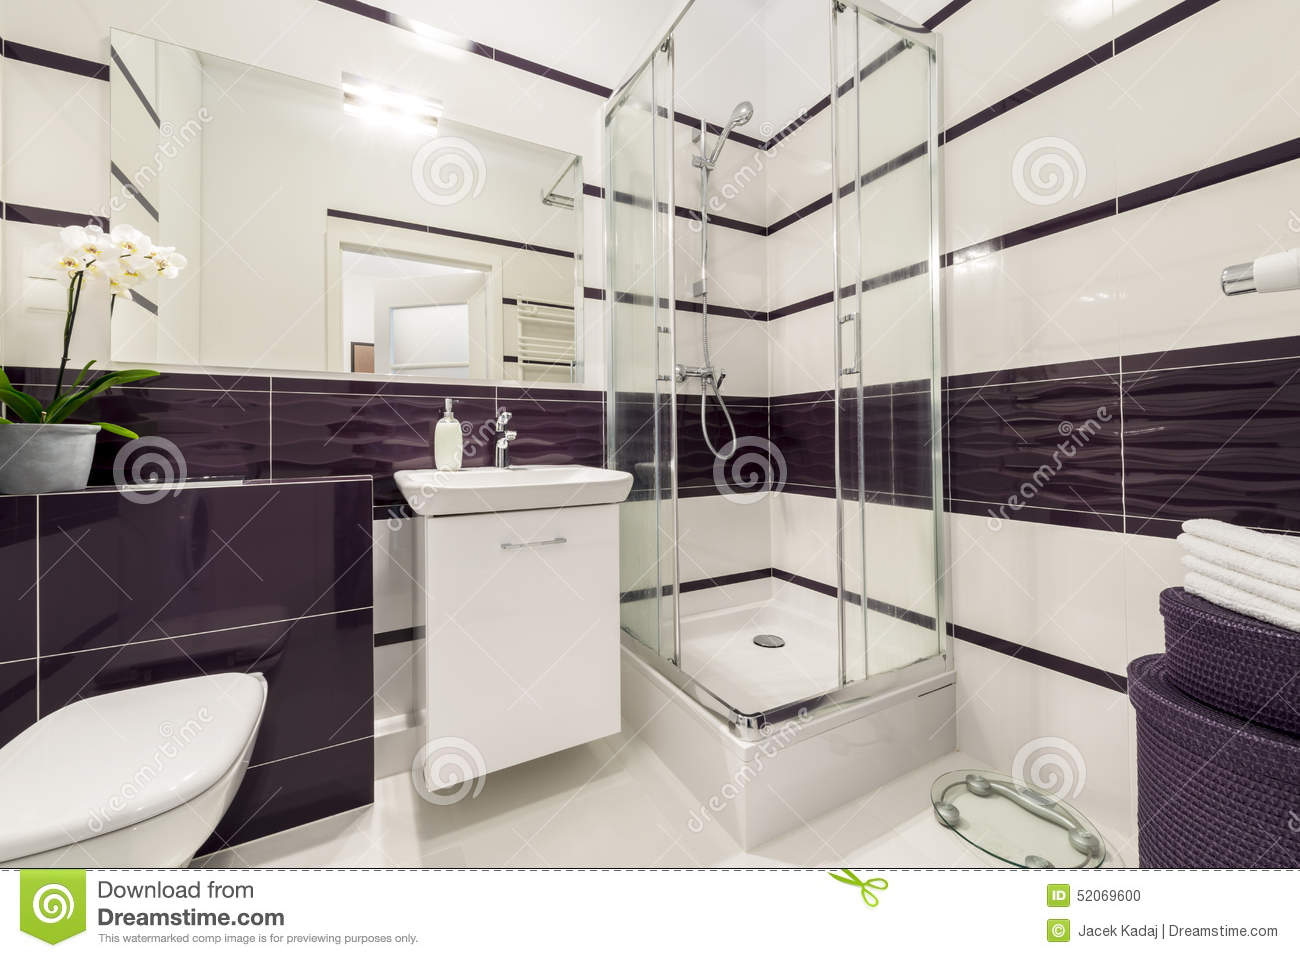 Salle de bains moderne avec le compartiment de douche photo stock image 52069600 for Photos douches modernes